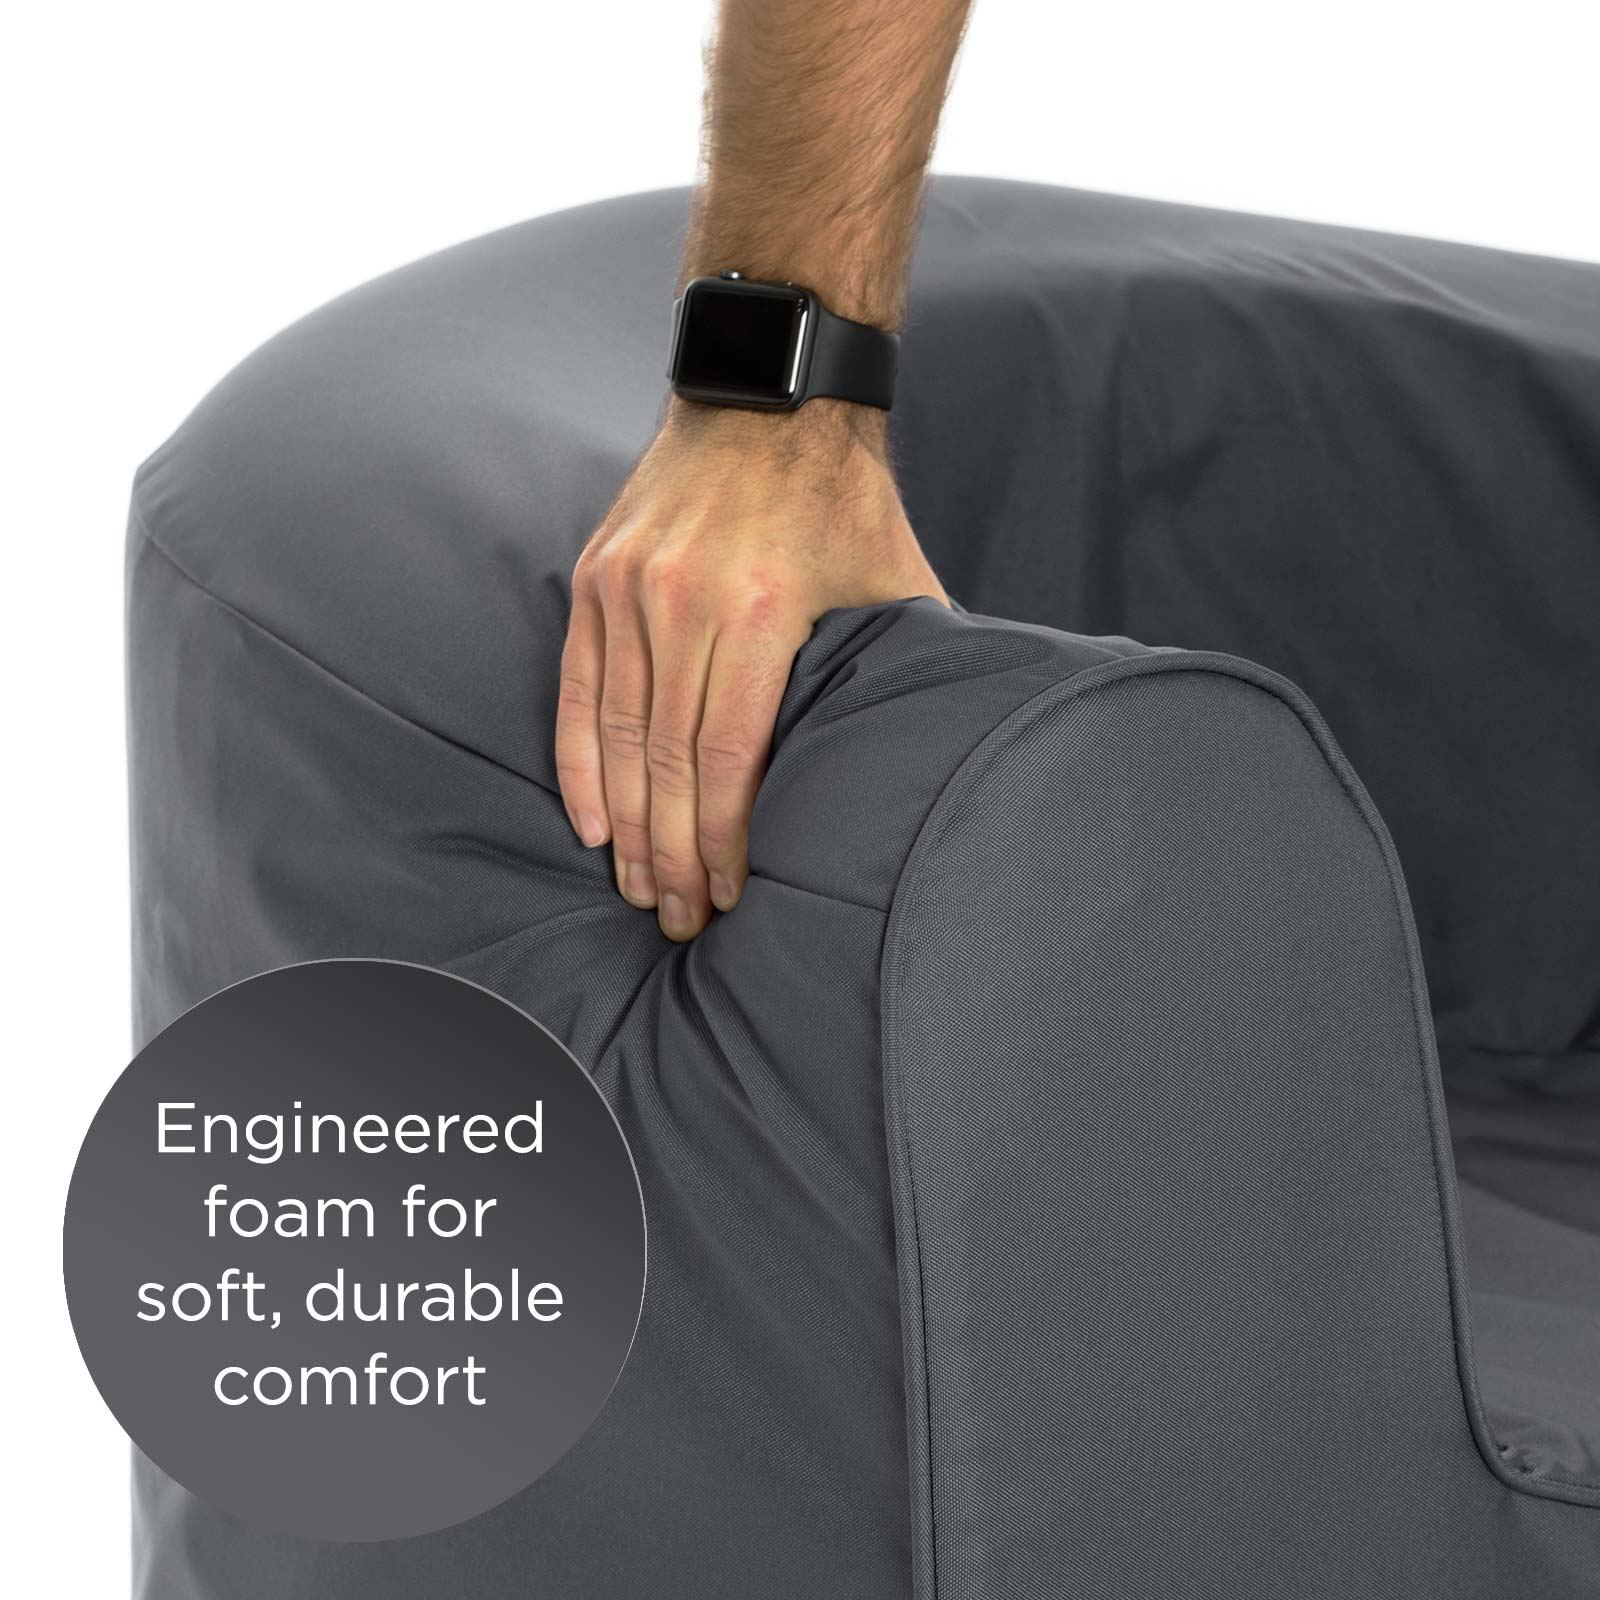 Close up of the soft durable foam pop lounge armchair